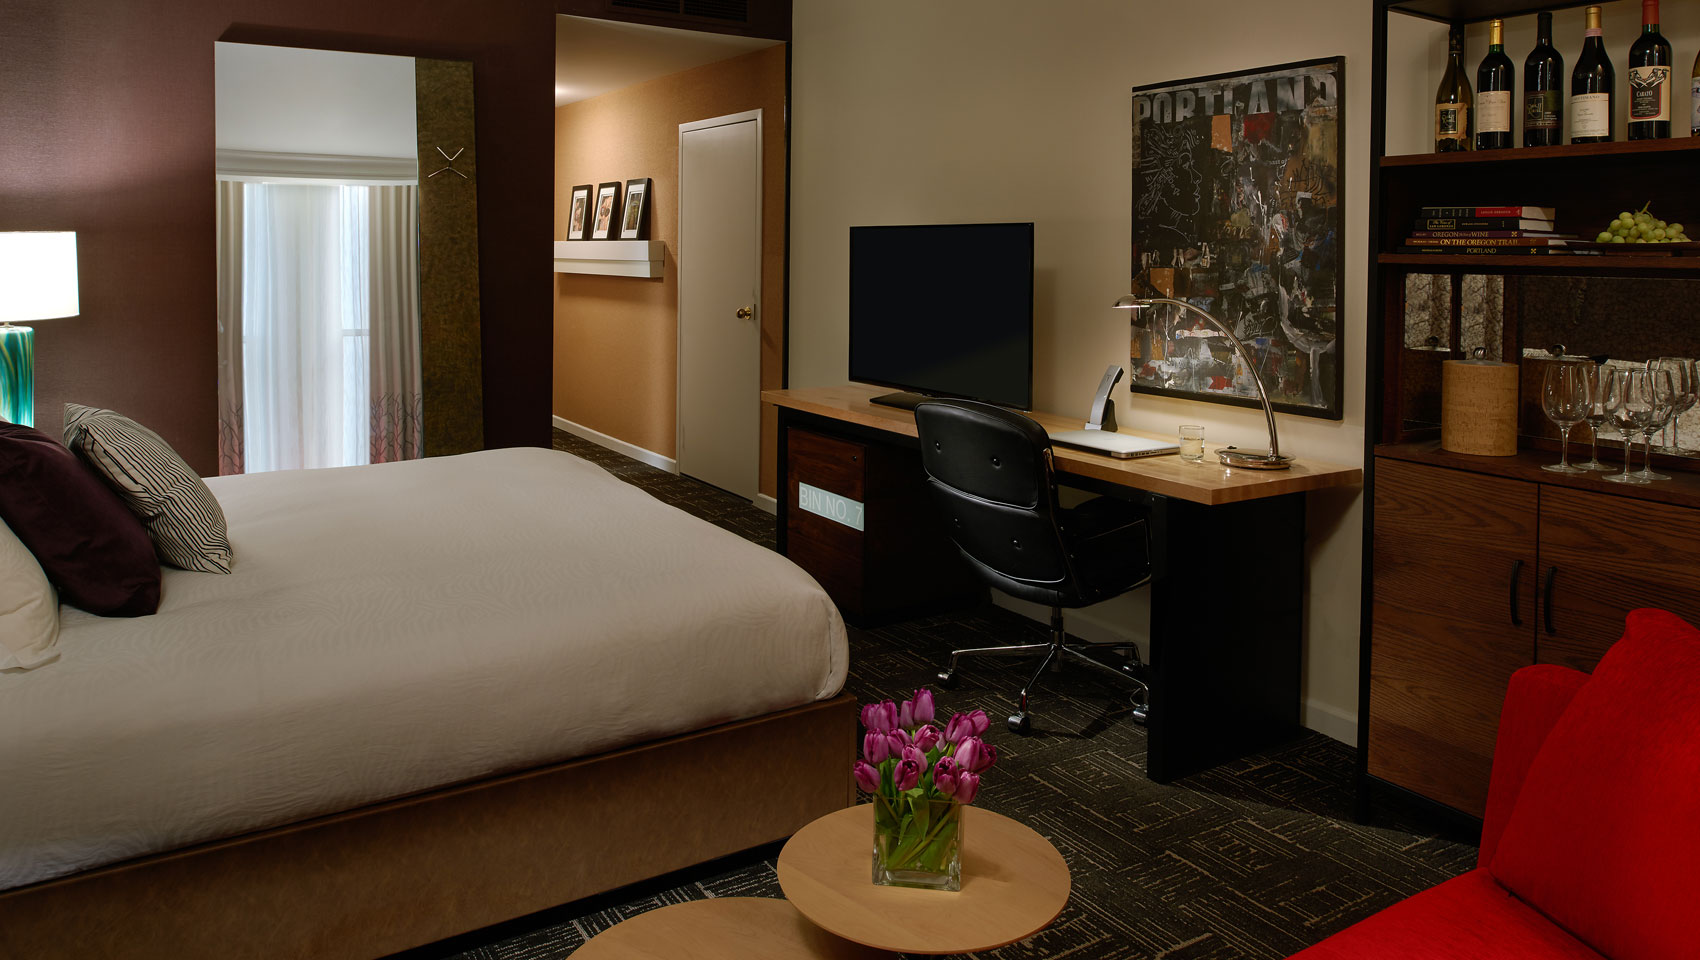 downtown portland boutique hotel rooms| vintage portland